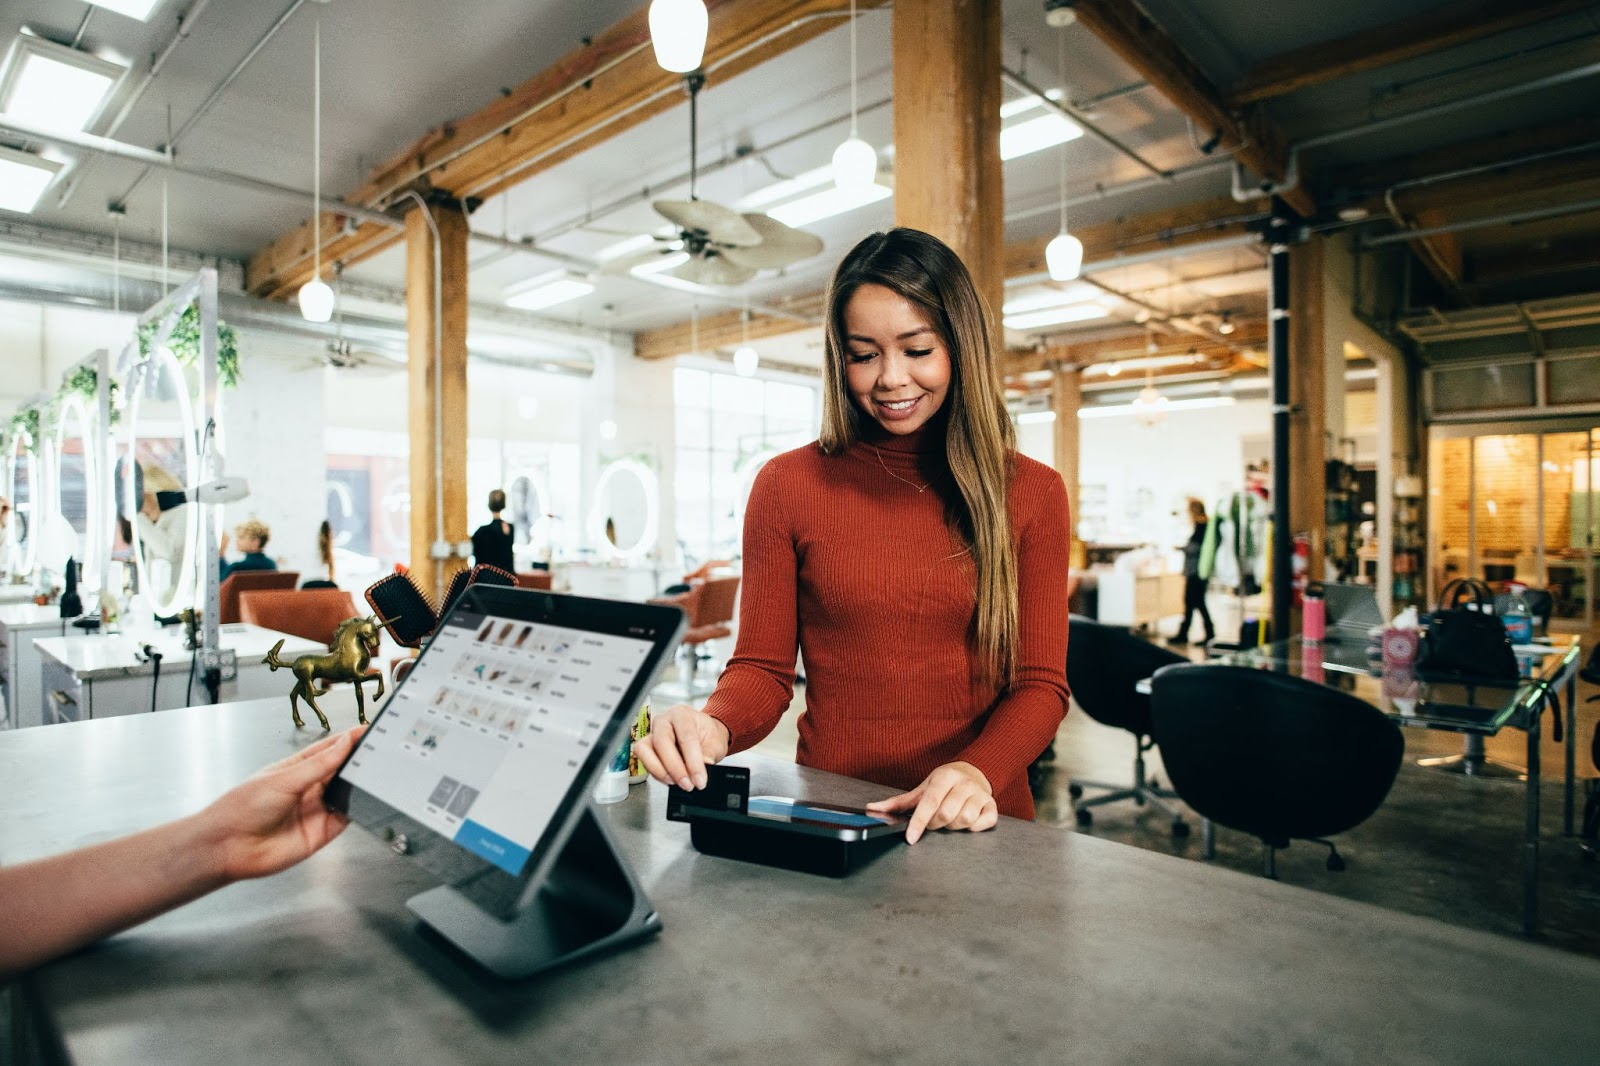 Streamlining payment gateways like Paypal, Stripe or Google Pay